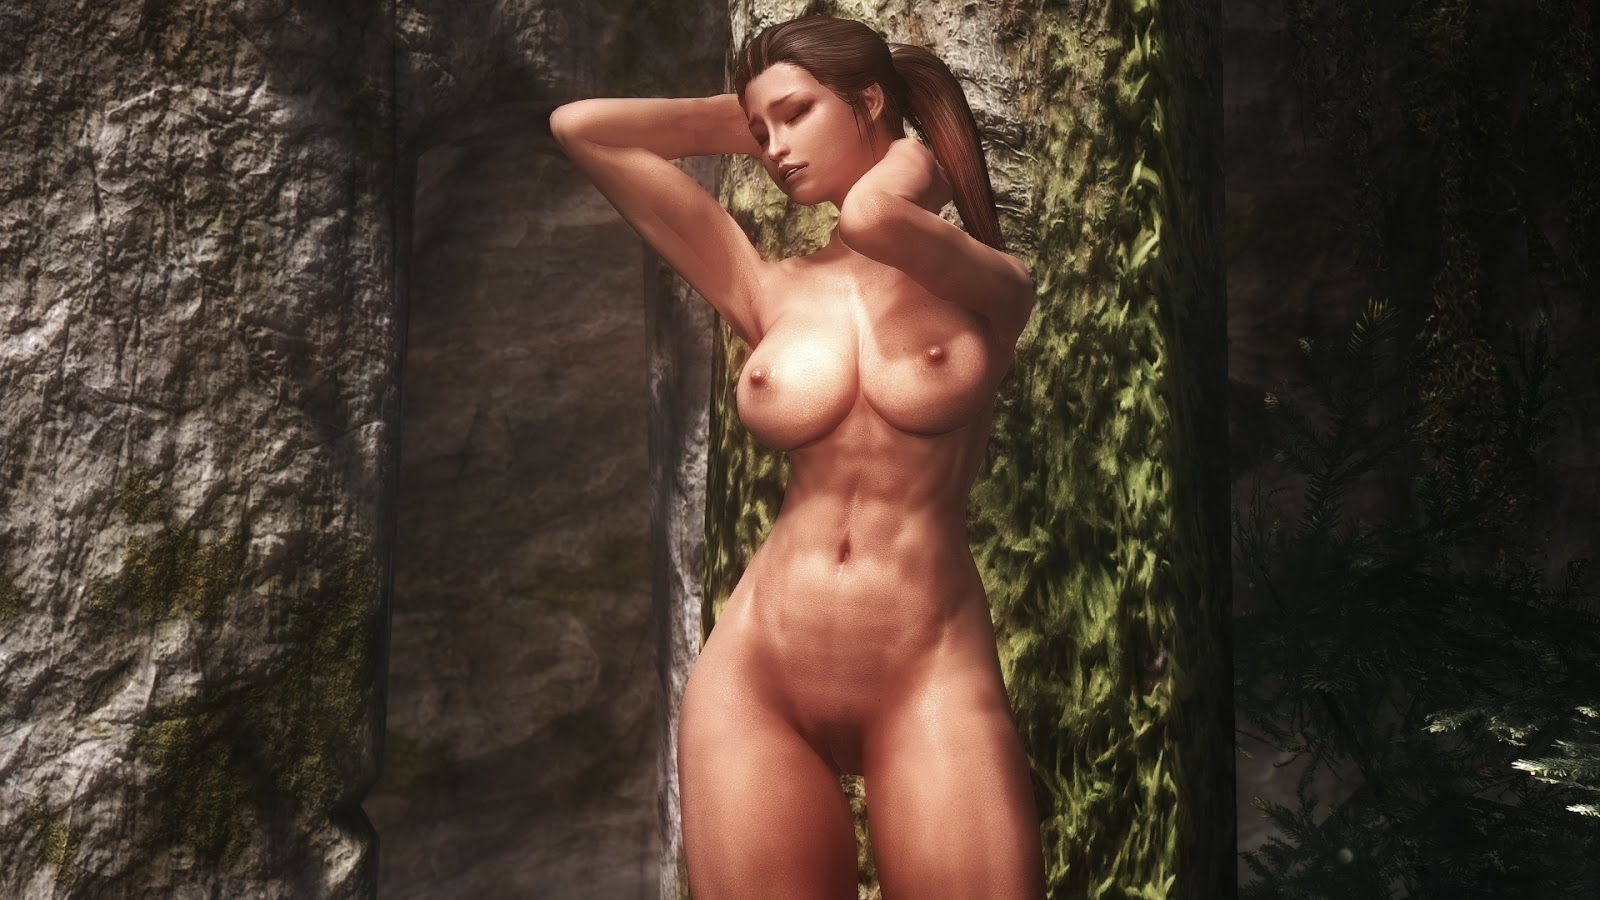 Skyrim naked mod pics cartoon pictures